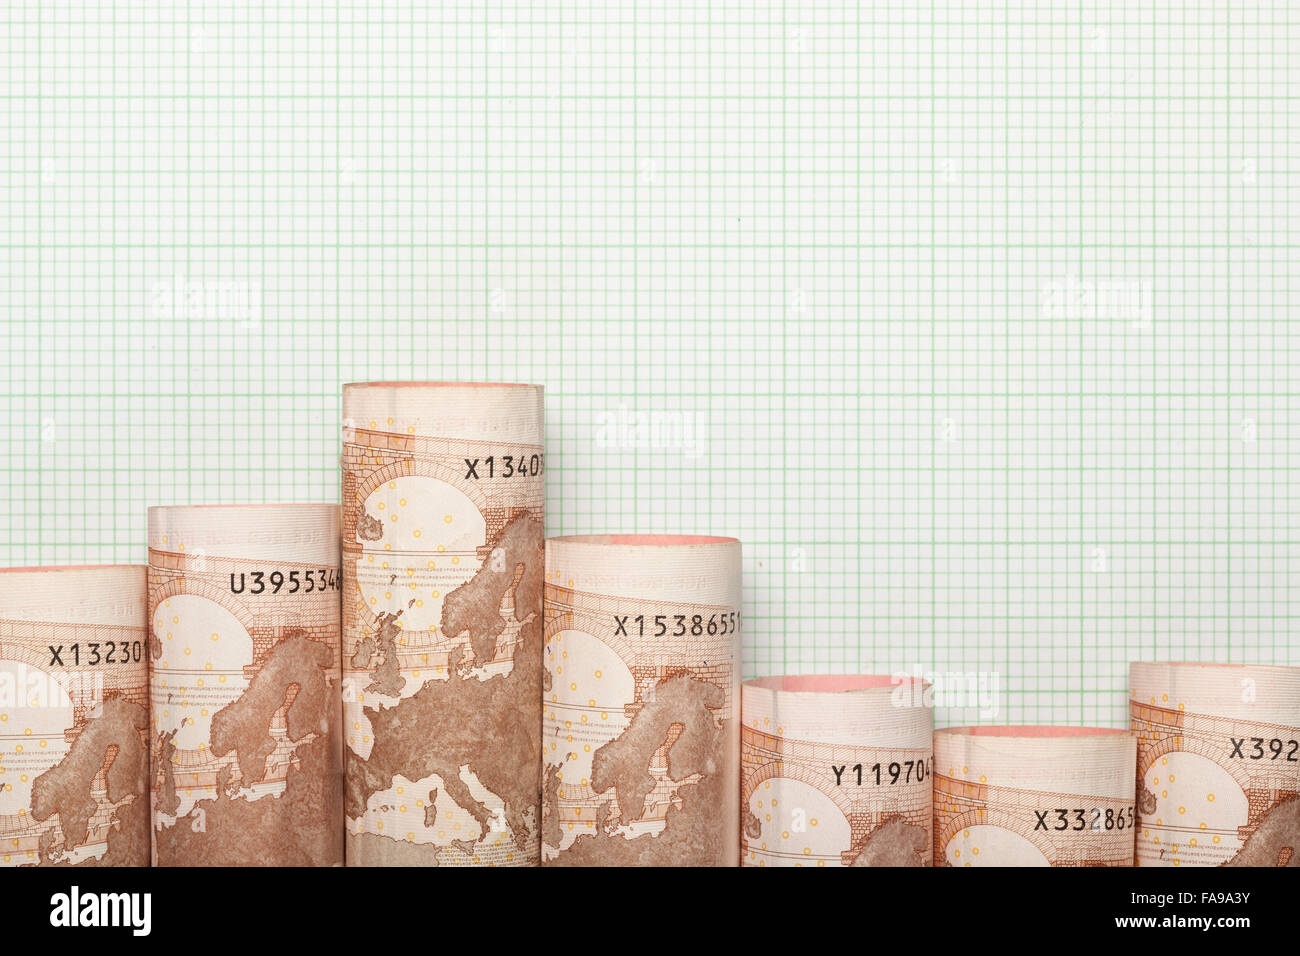 Euro currency forming a downtrend graph - Stock Image